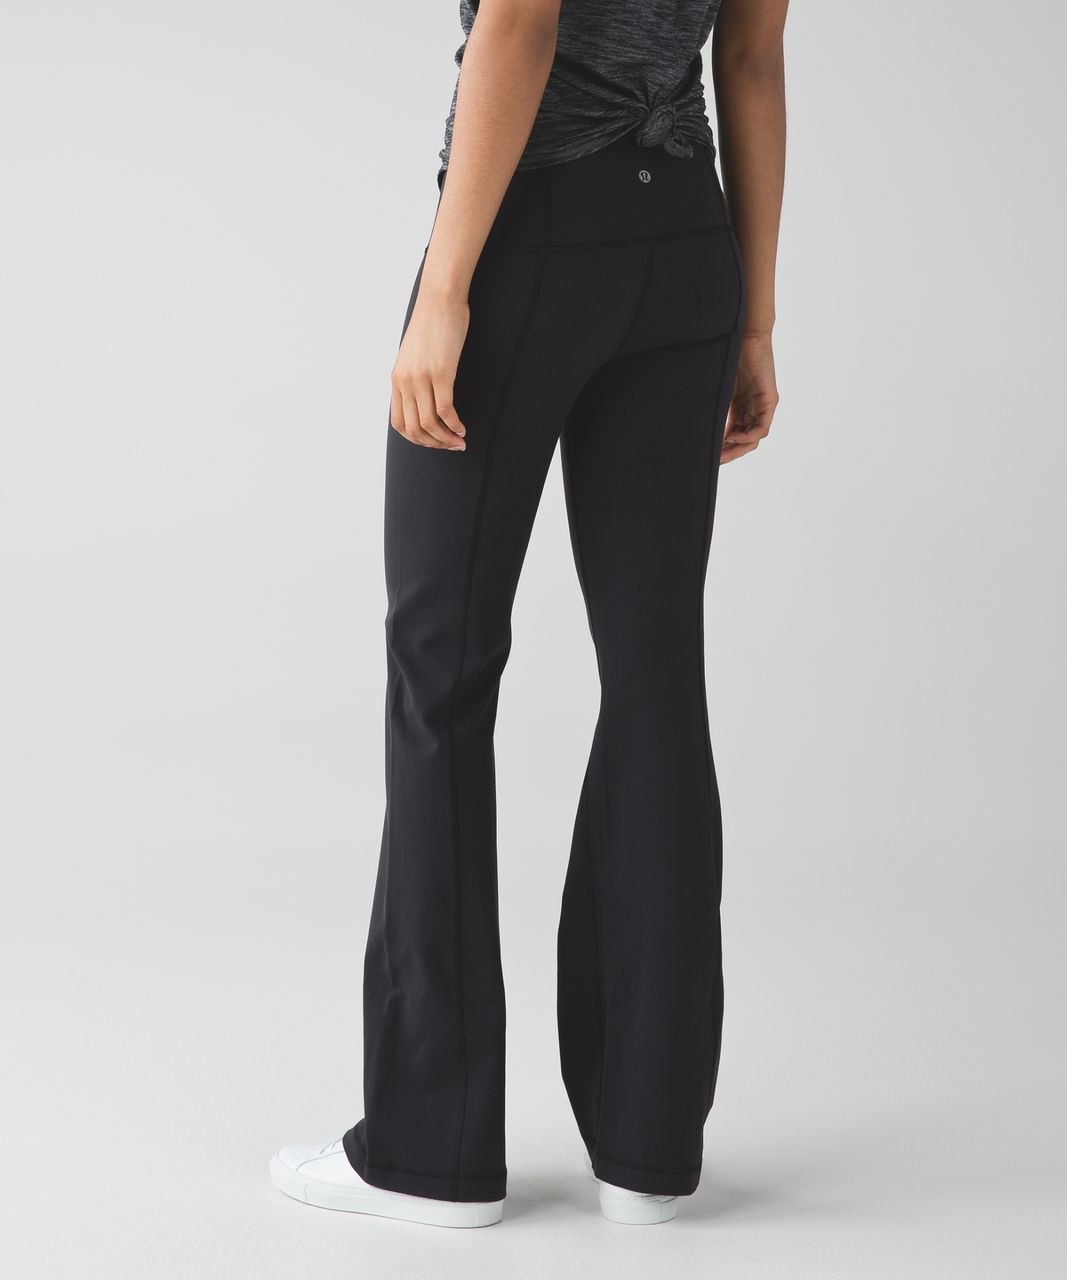 Lululemon Groove Pant III (Regular) - Black